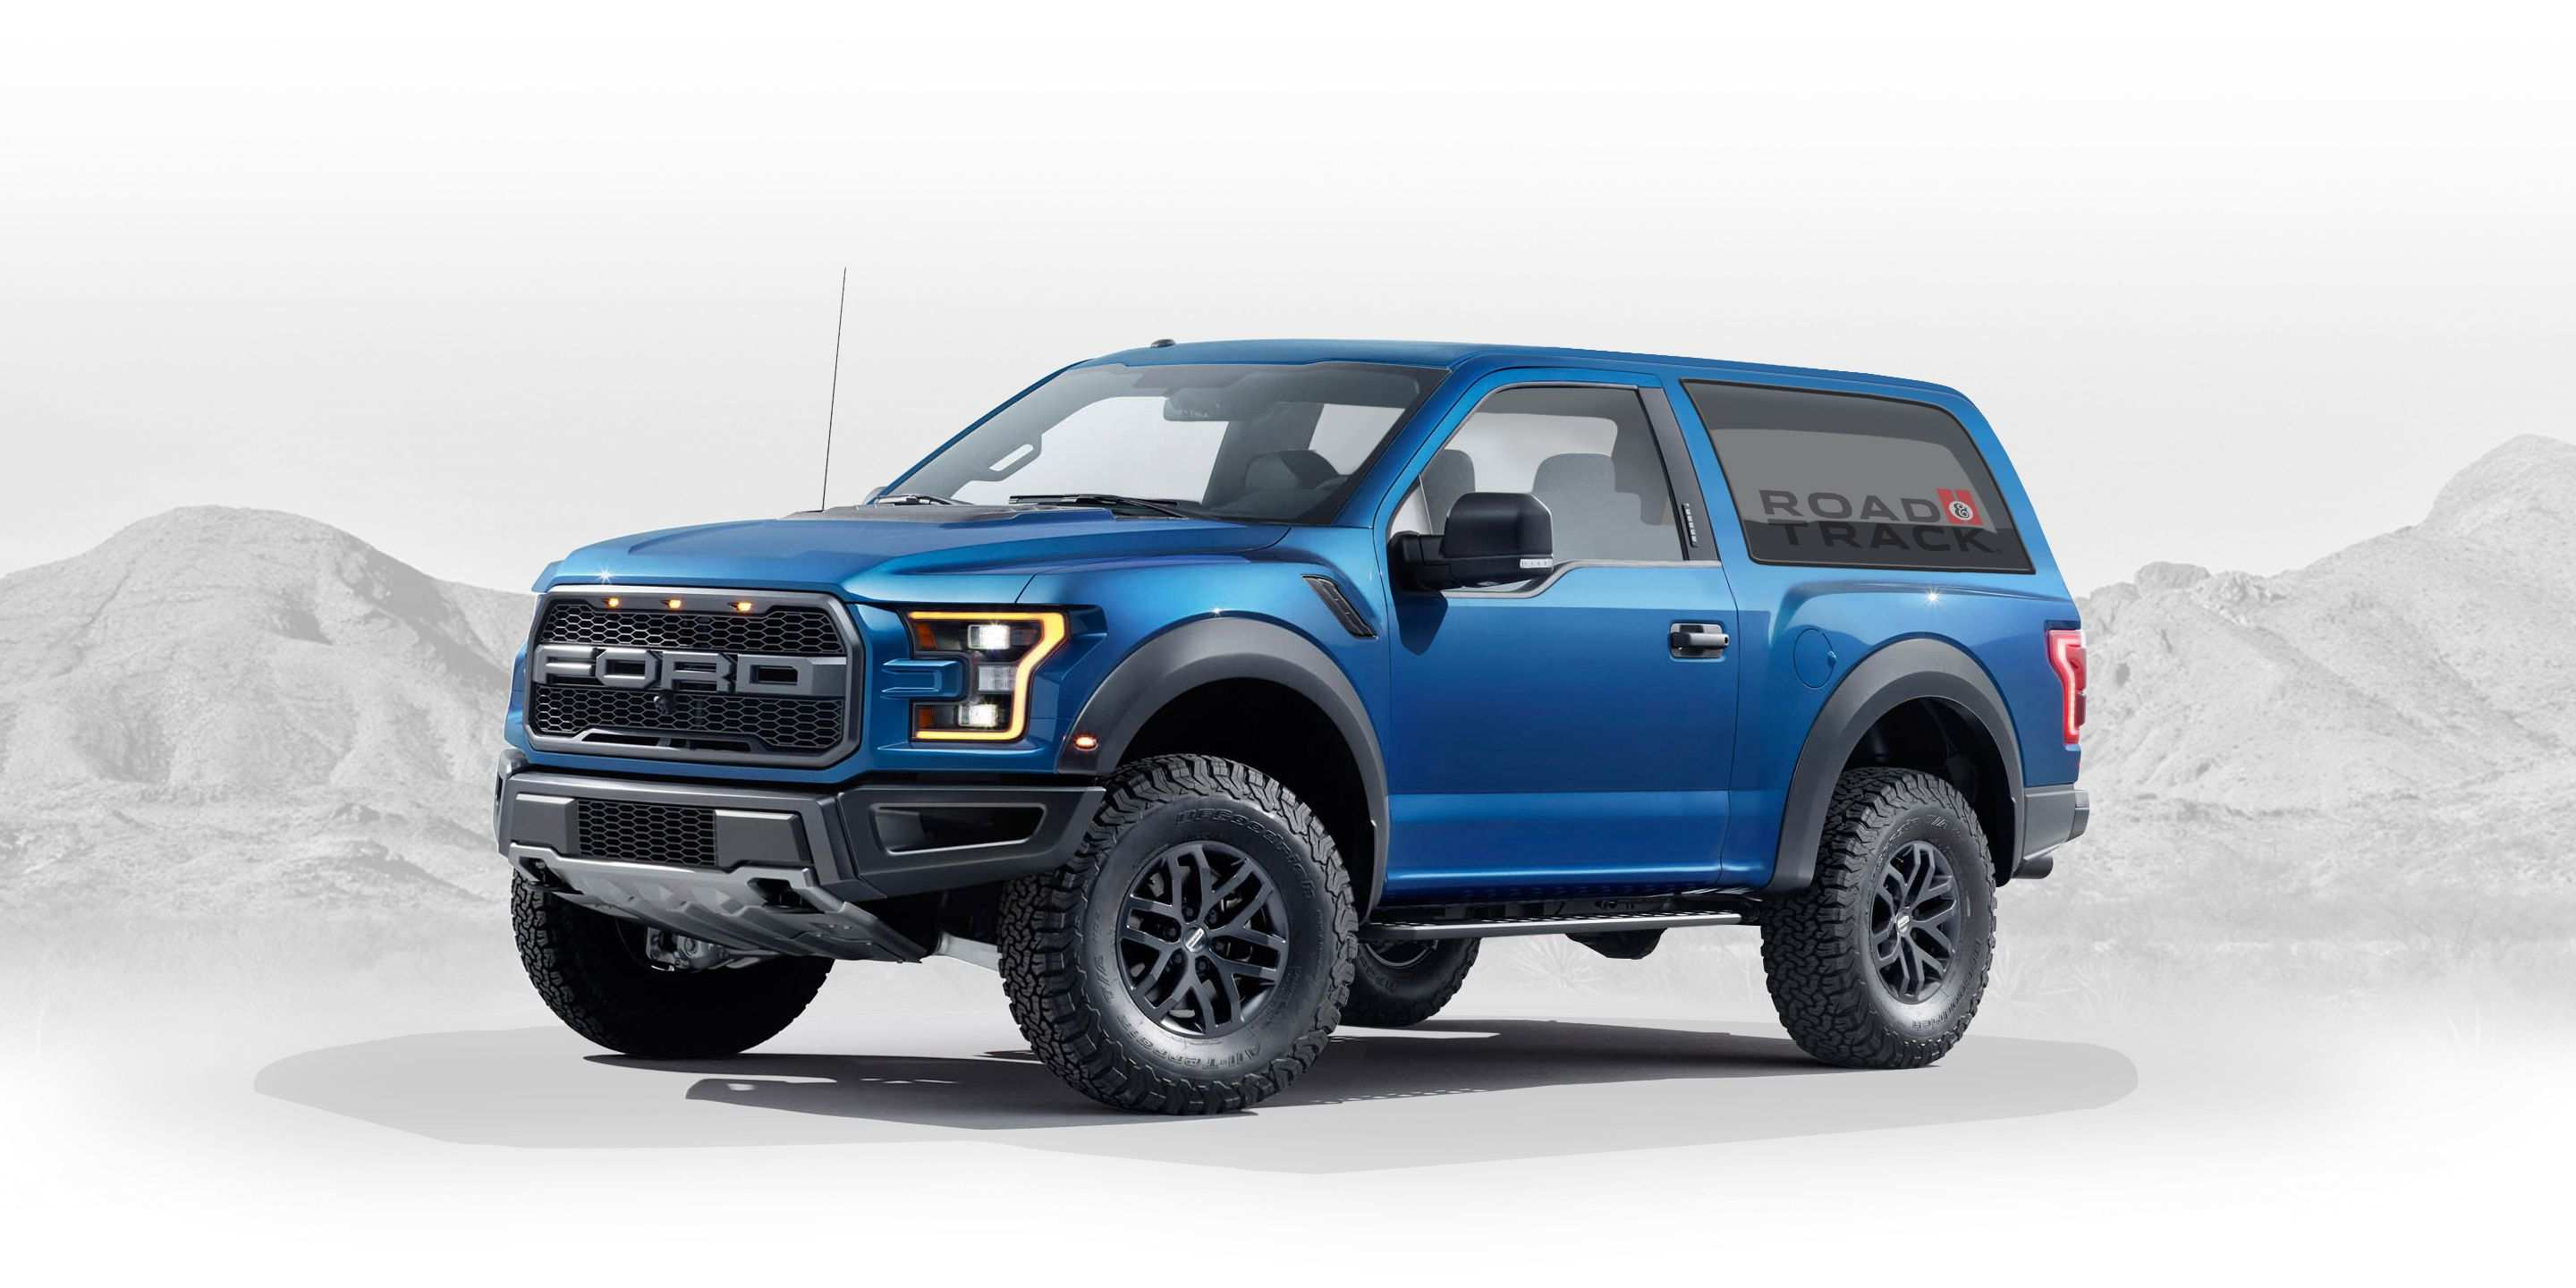 99 All New 2020 Ford Bronco Raptor Exterior and Interior with 2020 Ford Bronco Raptor